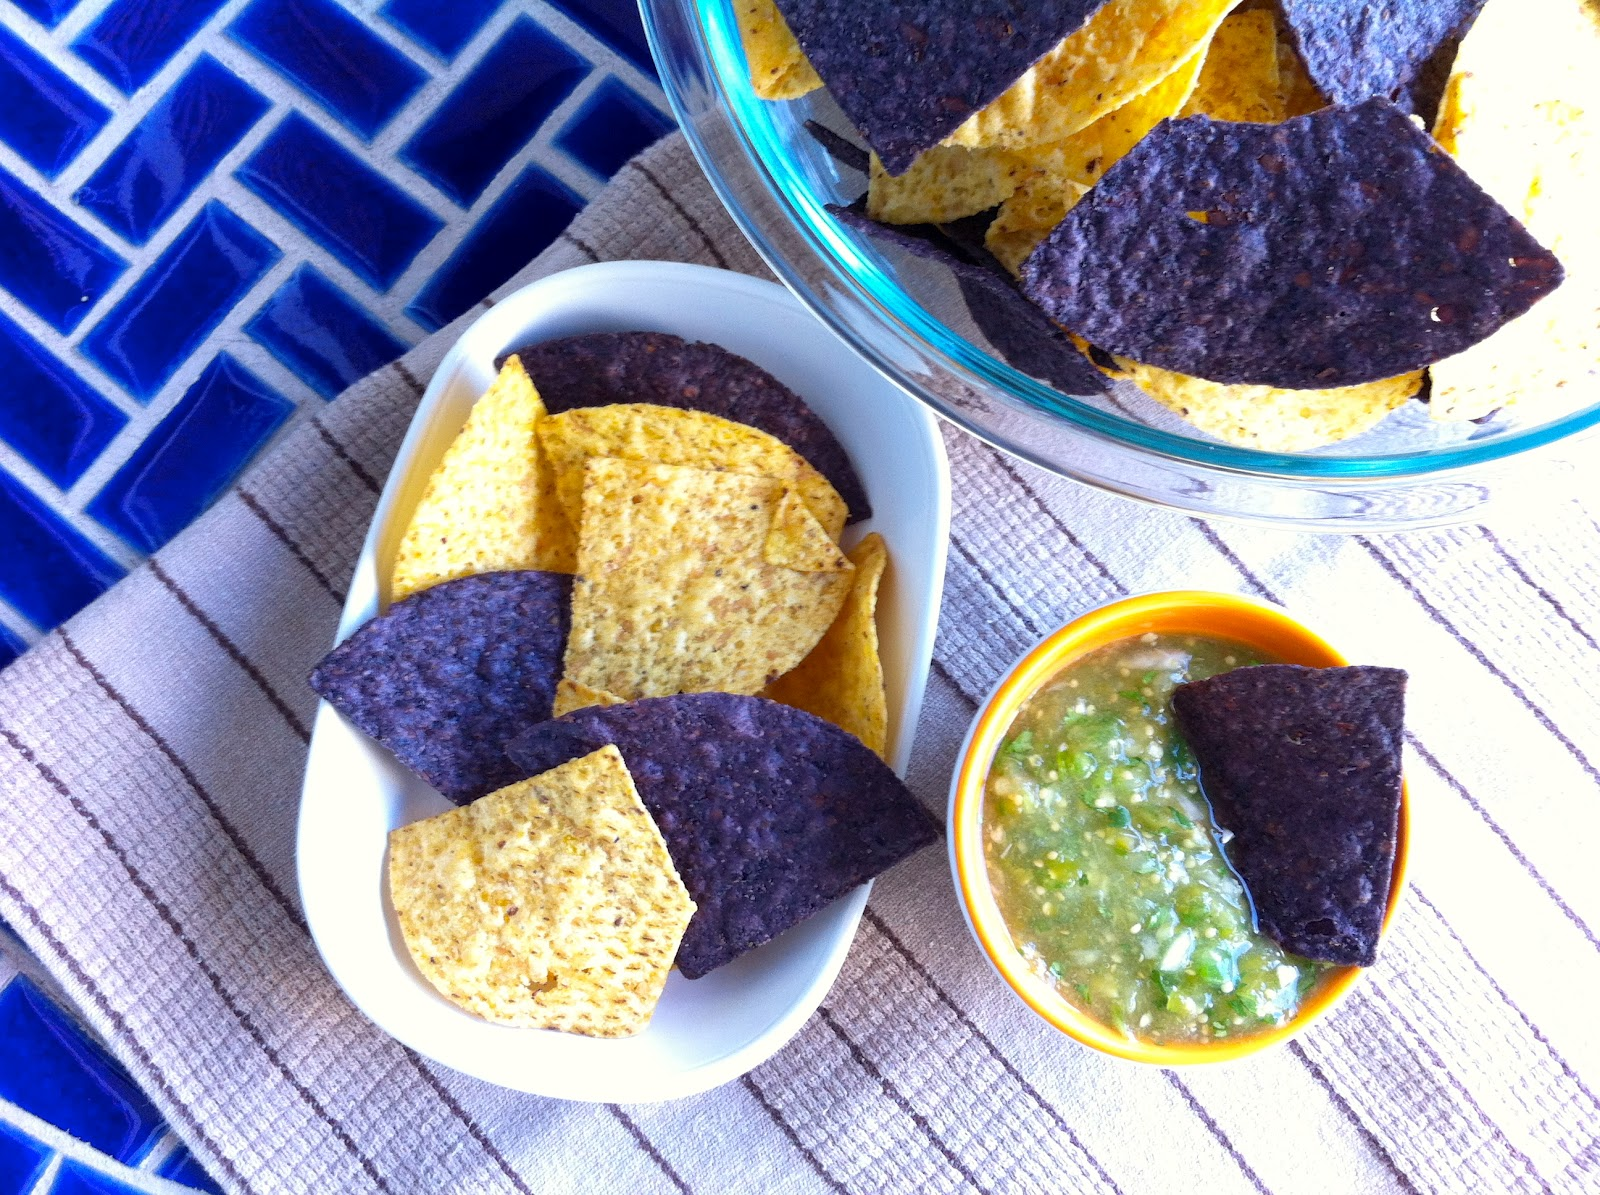 Tomatillo Salsa with Blue and Yellow Tortilla Chips